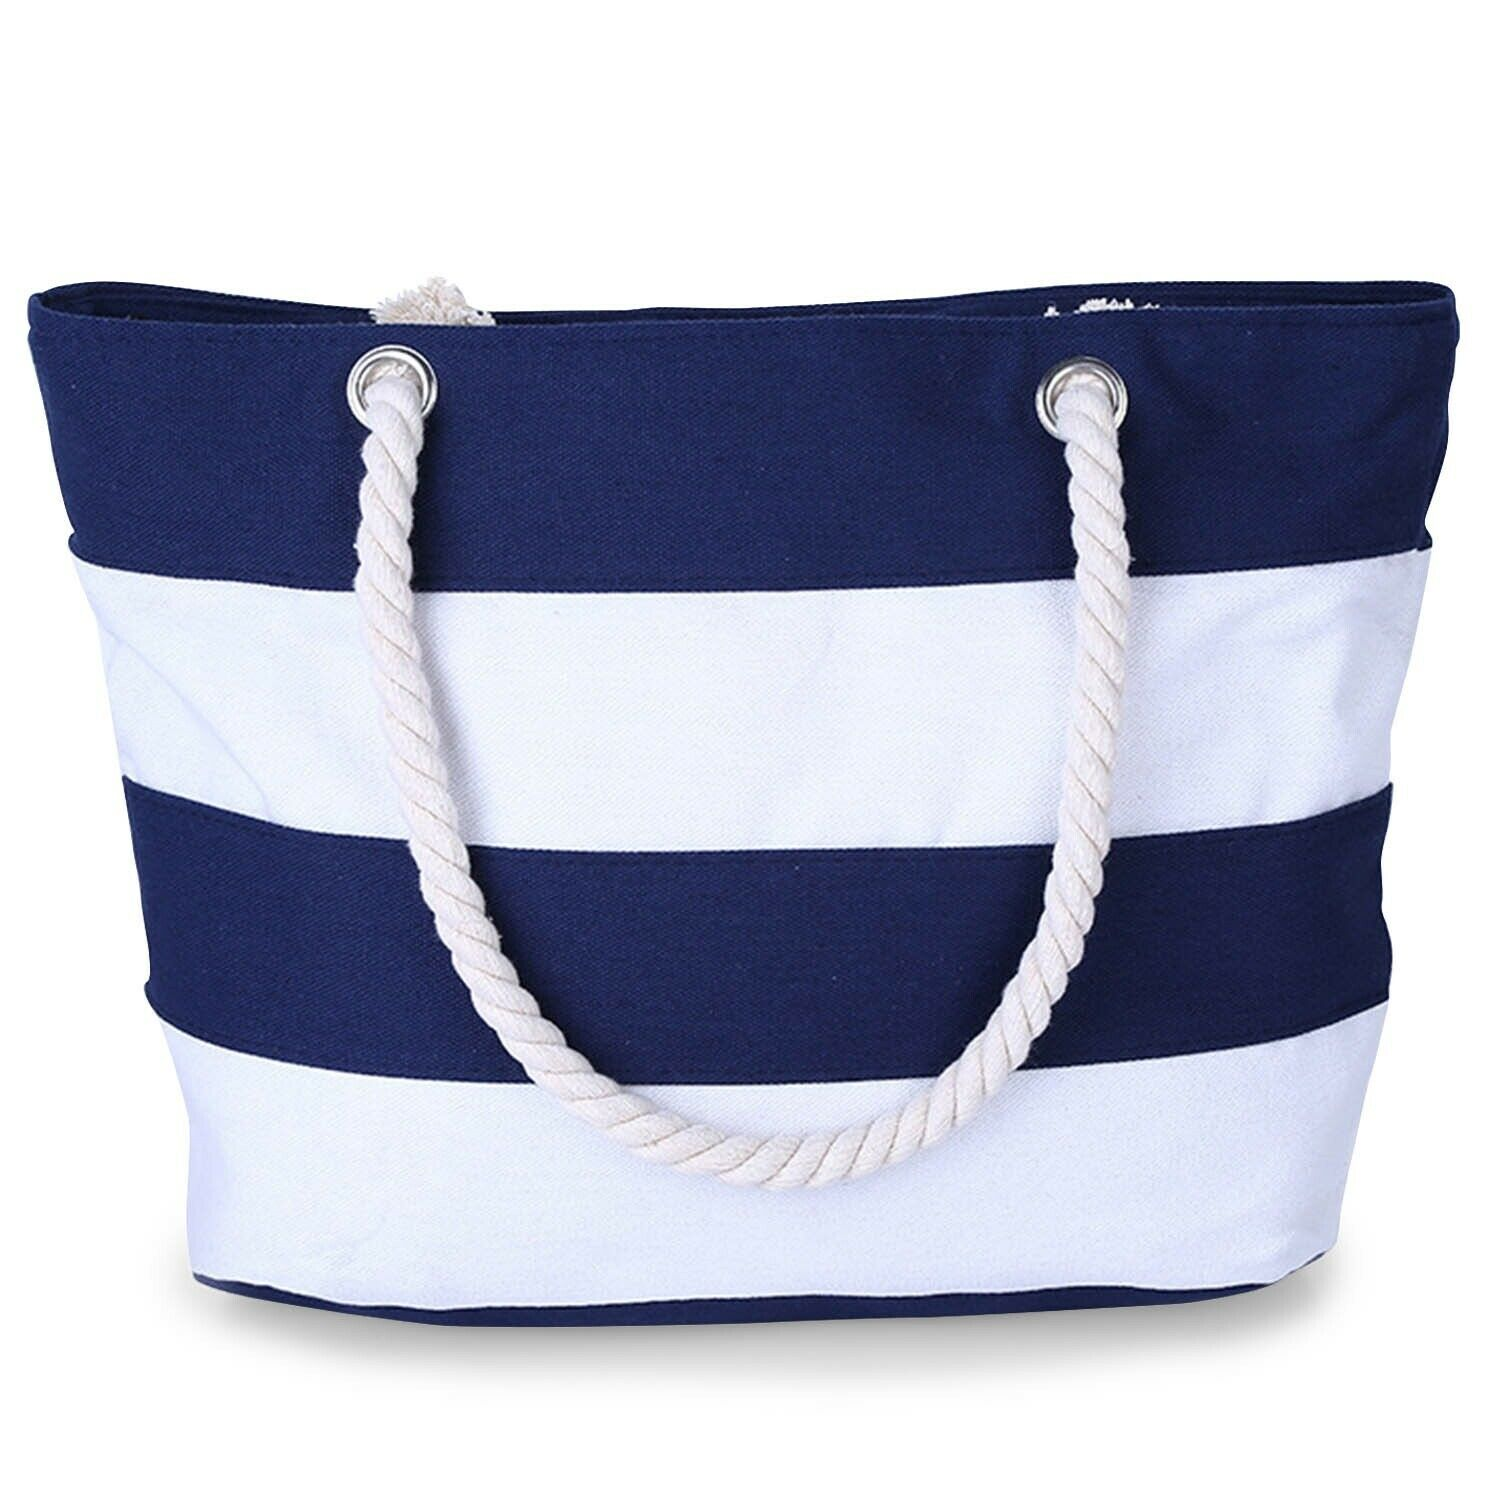 CoreLife Large Canvas Beach Tote Bag with Inner Zipper Pocke